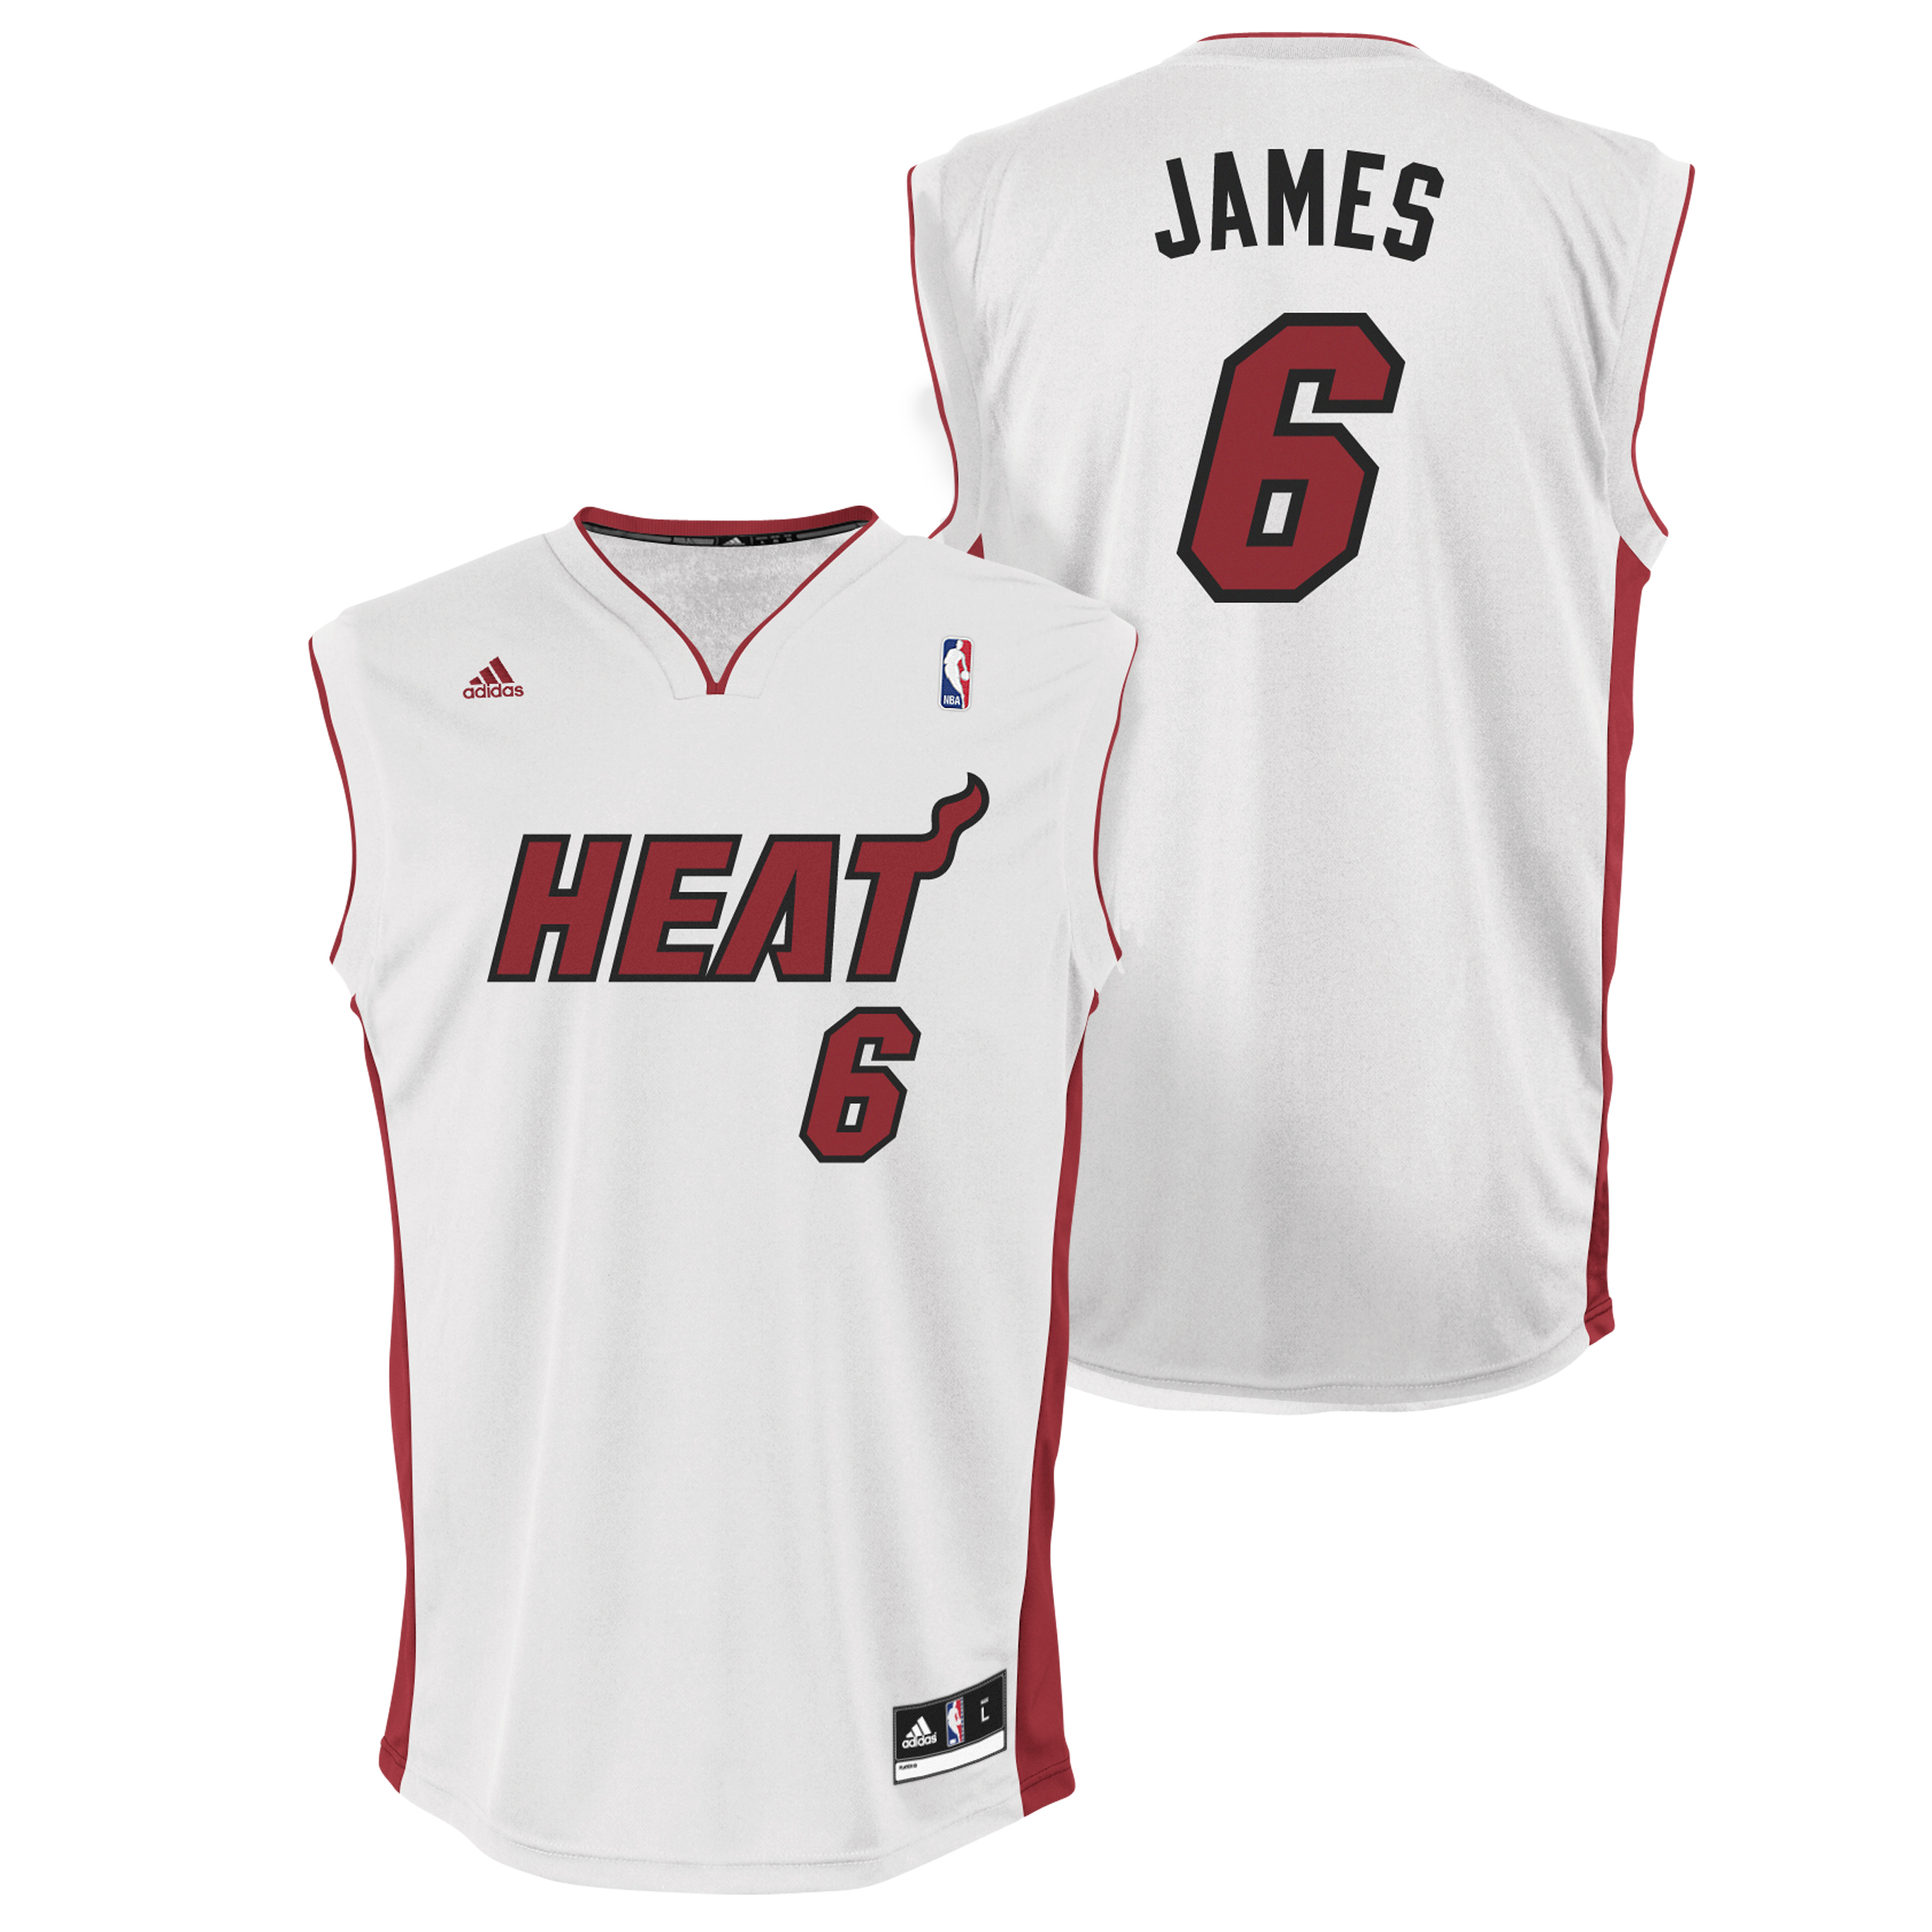 Miami Heat Home Replica Jersey - LeBron James - Mens